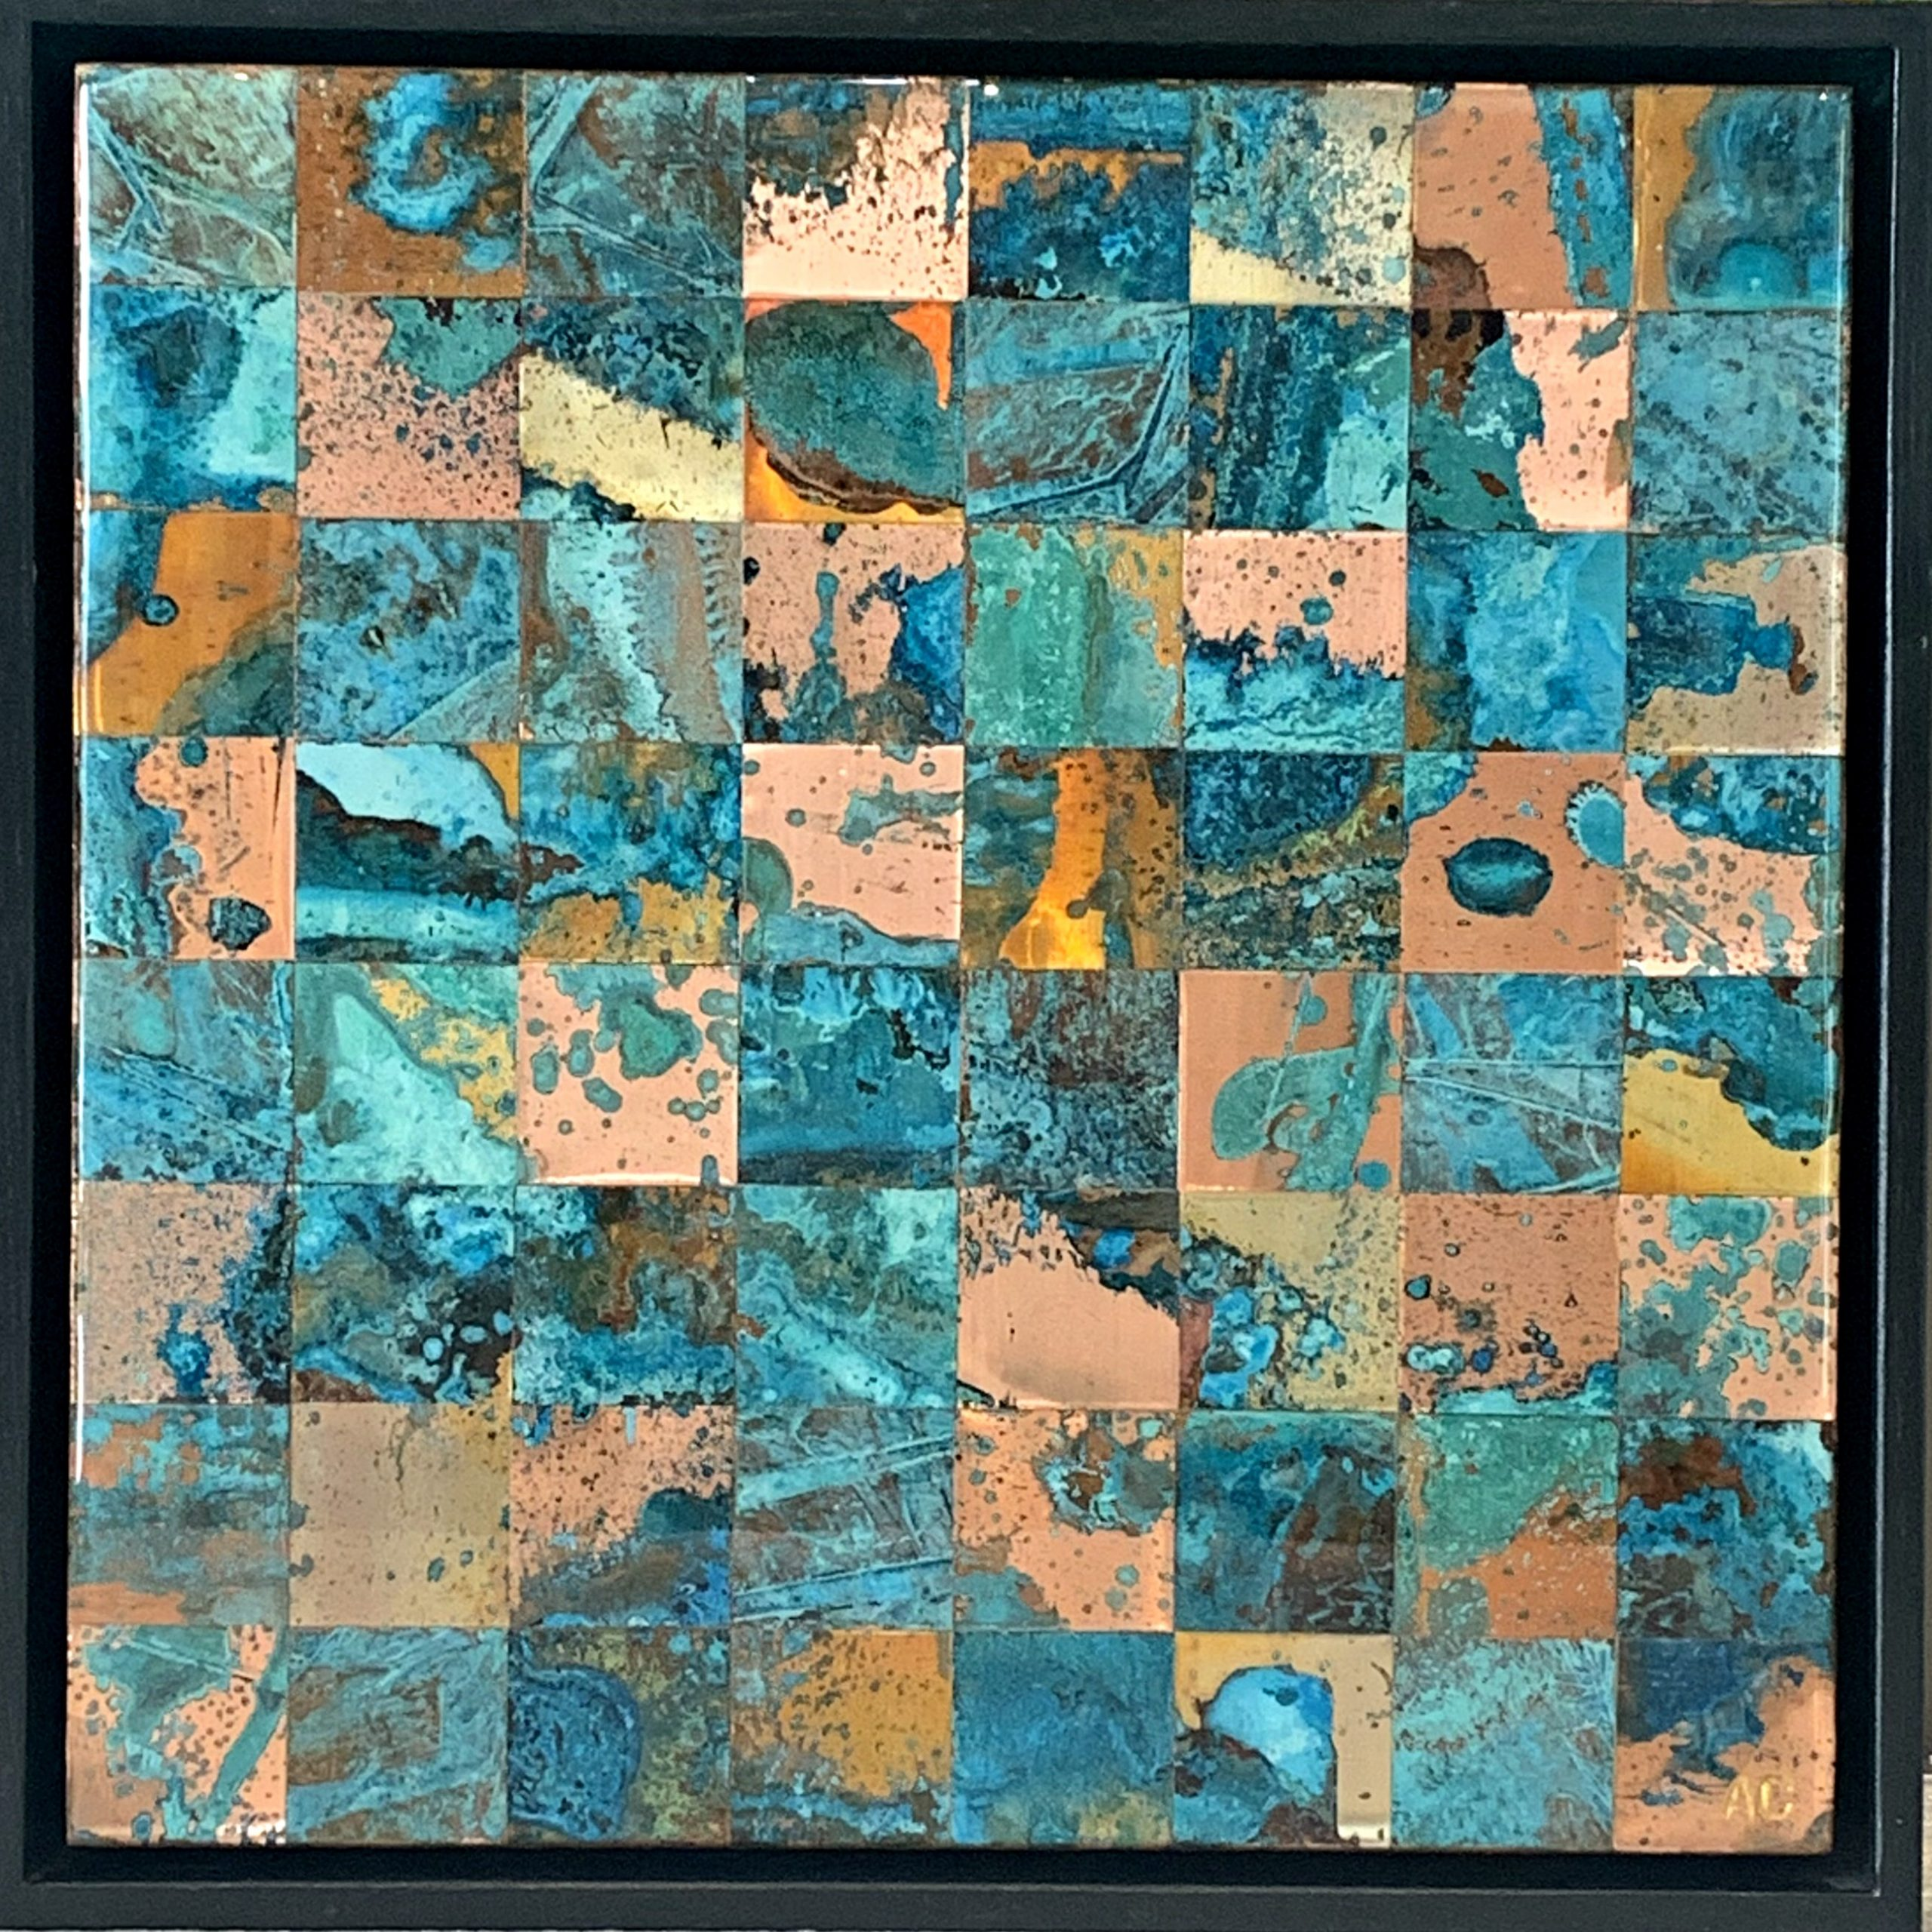 Square Foot Art #15, copper painting by Adam Colangelo | Effusion Art Gallery + Cast Glass Studio, Invermere BC